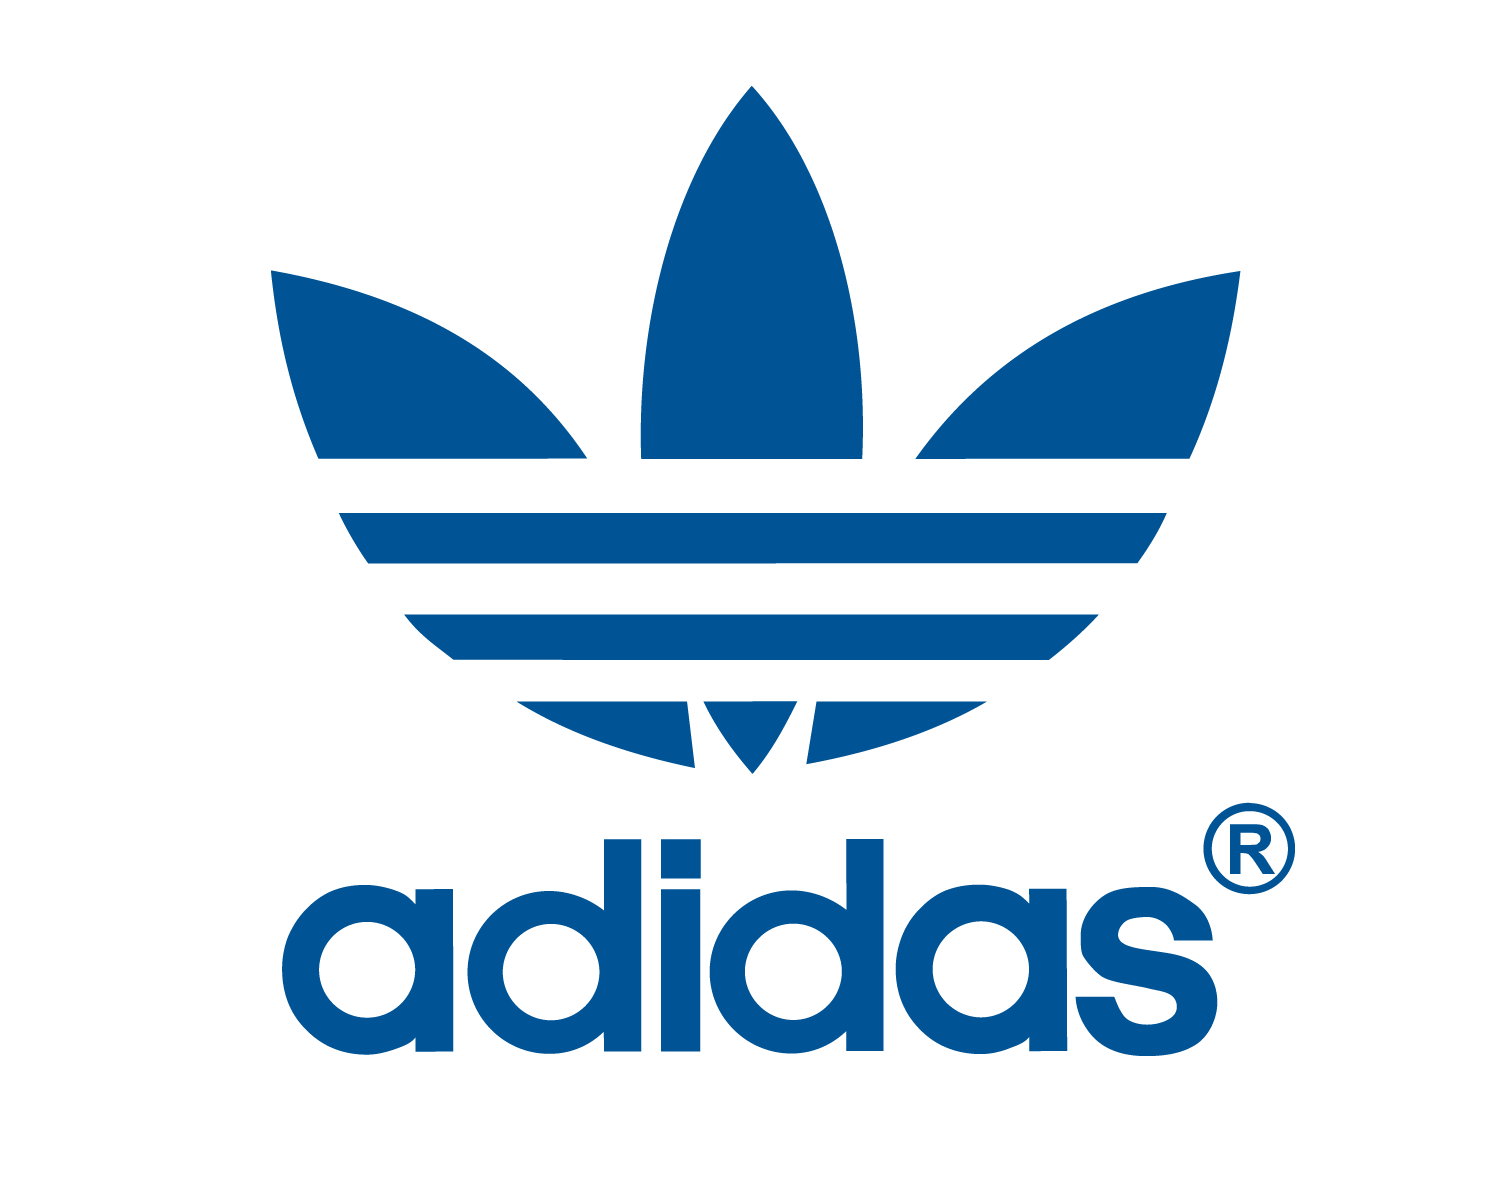 adidas coupons, adidas offers, adidas deals, adidas discounts